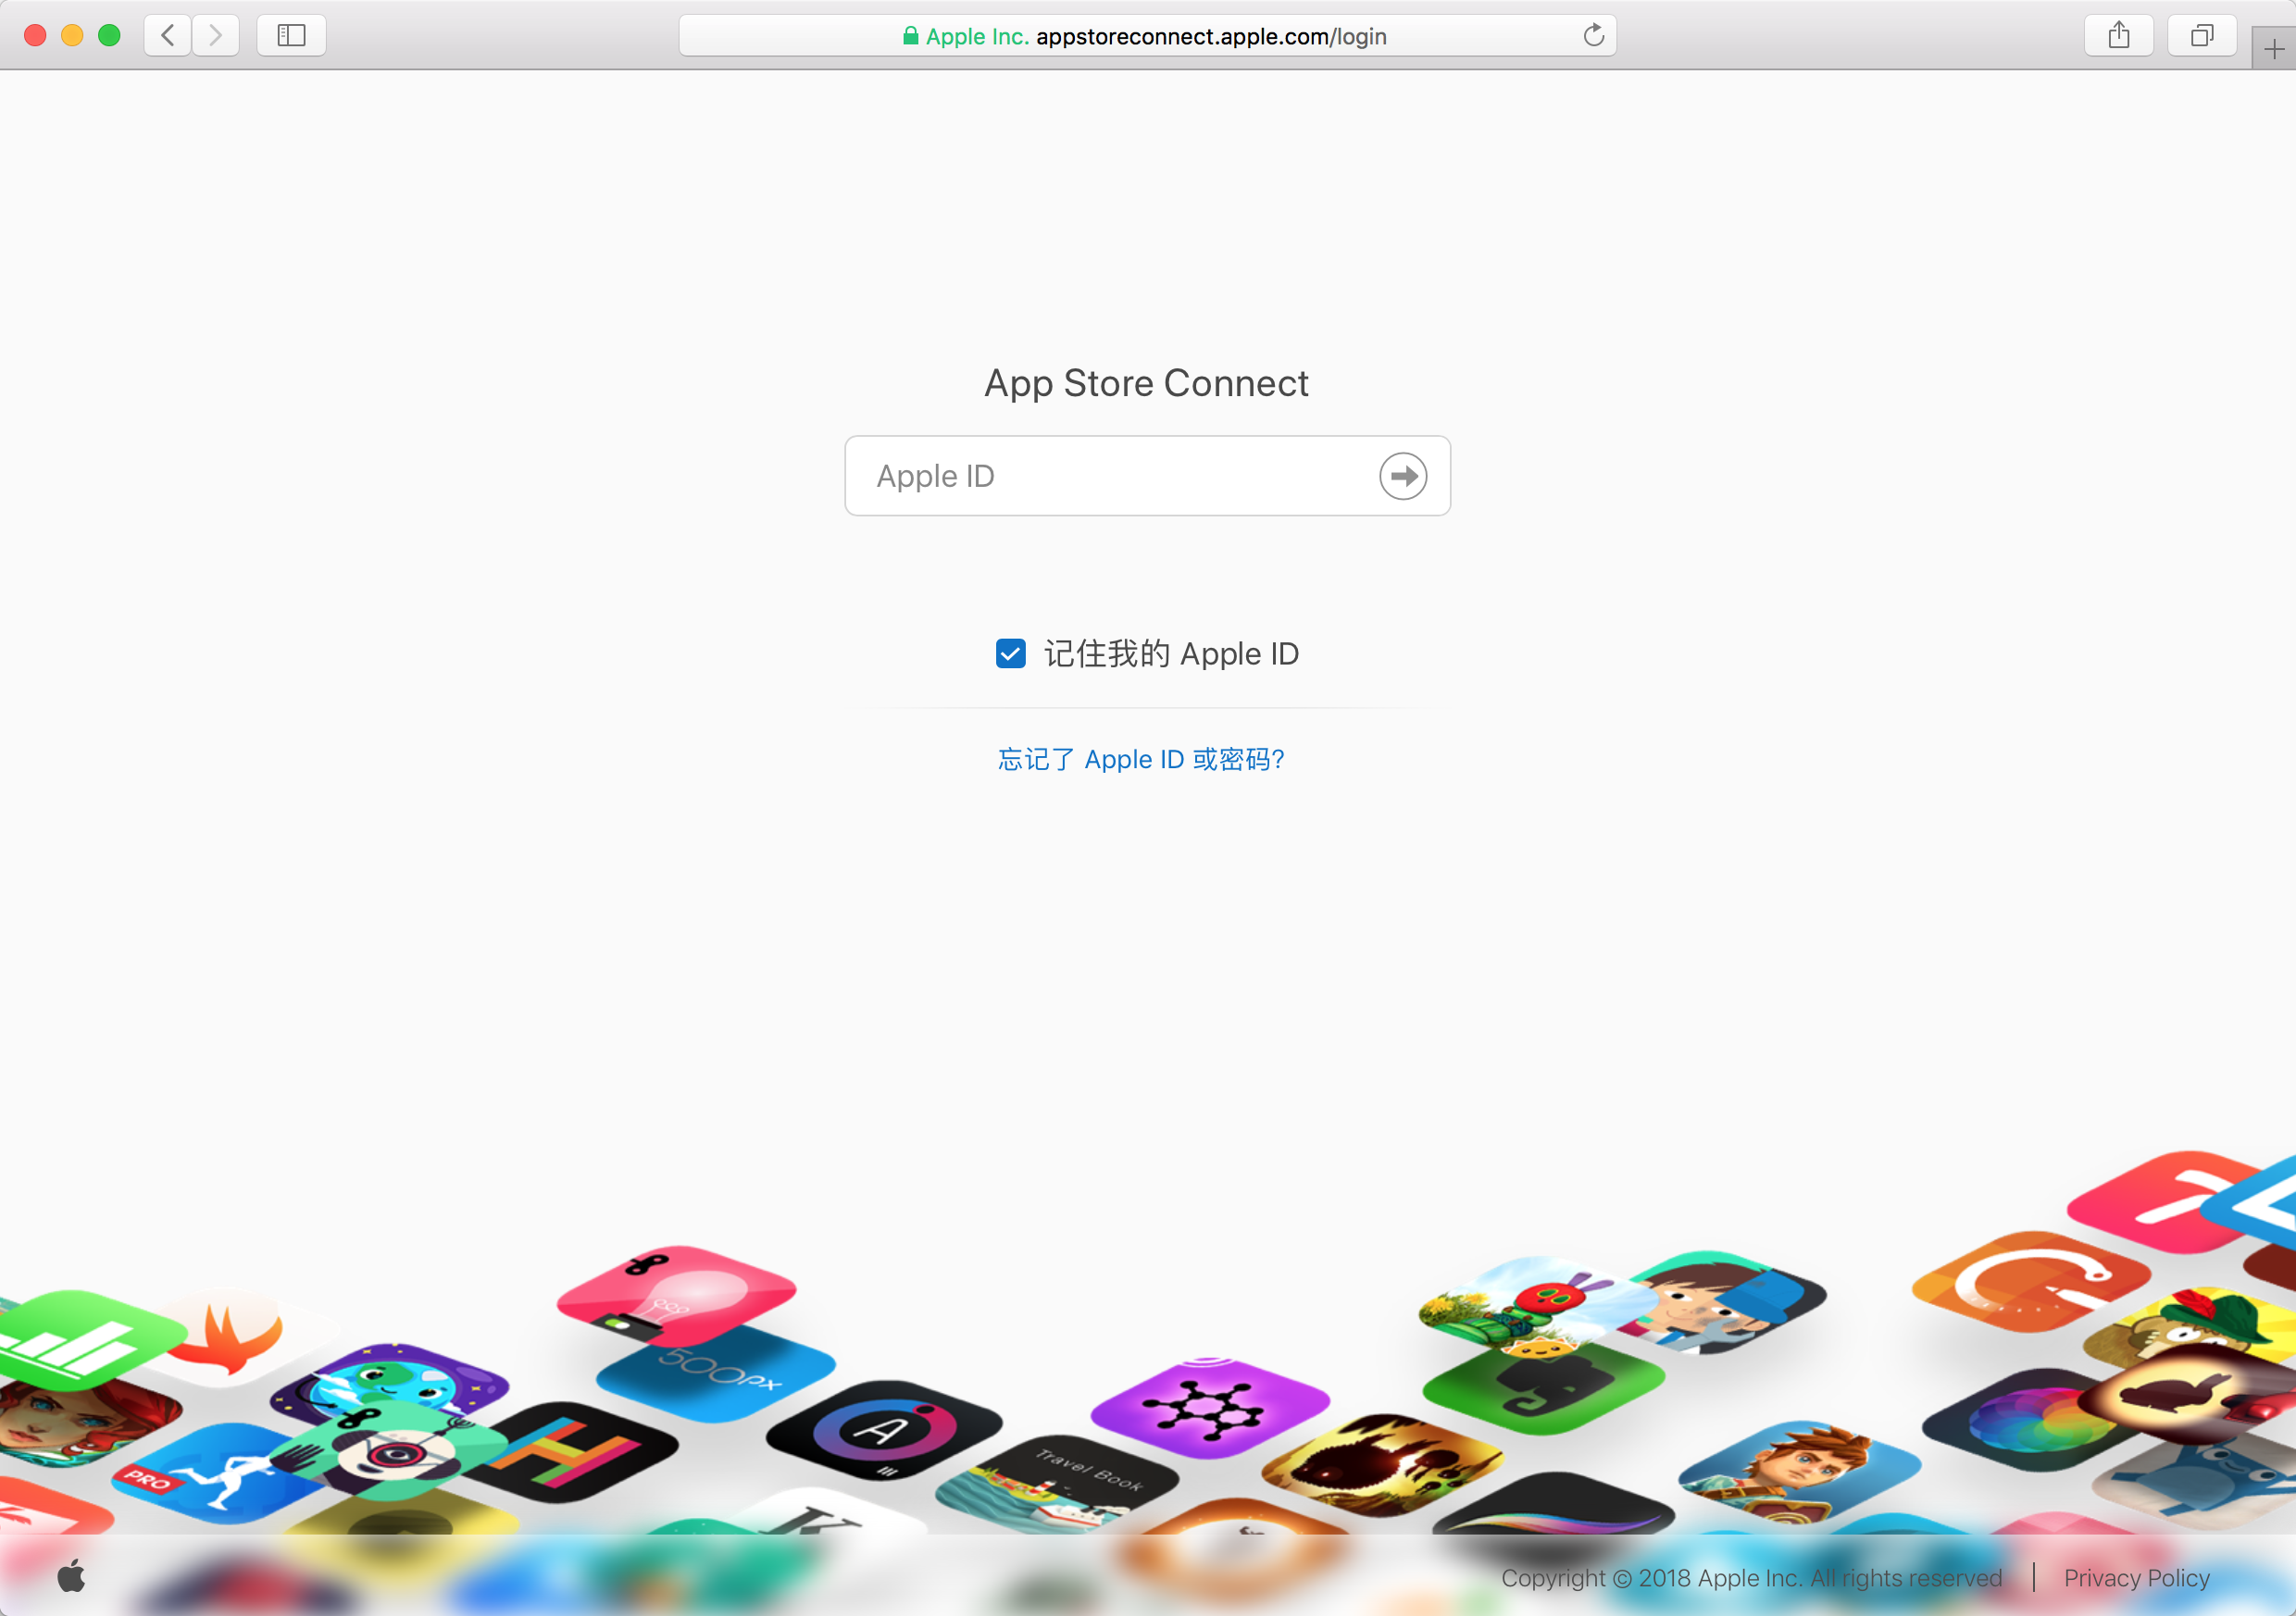 App Store Connect 用Chrome浏览器打不开-ERR_SPDY_INADEQUATE_TRANSPORT_SECURITY 的问题